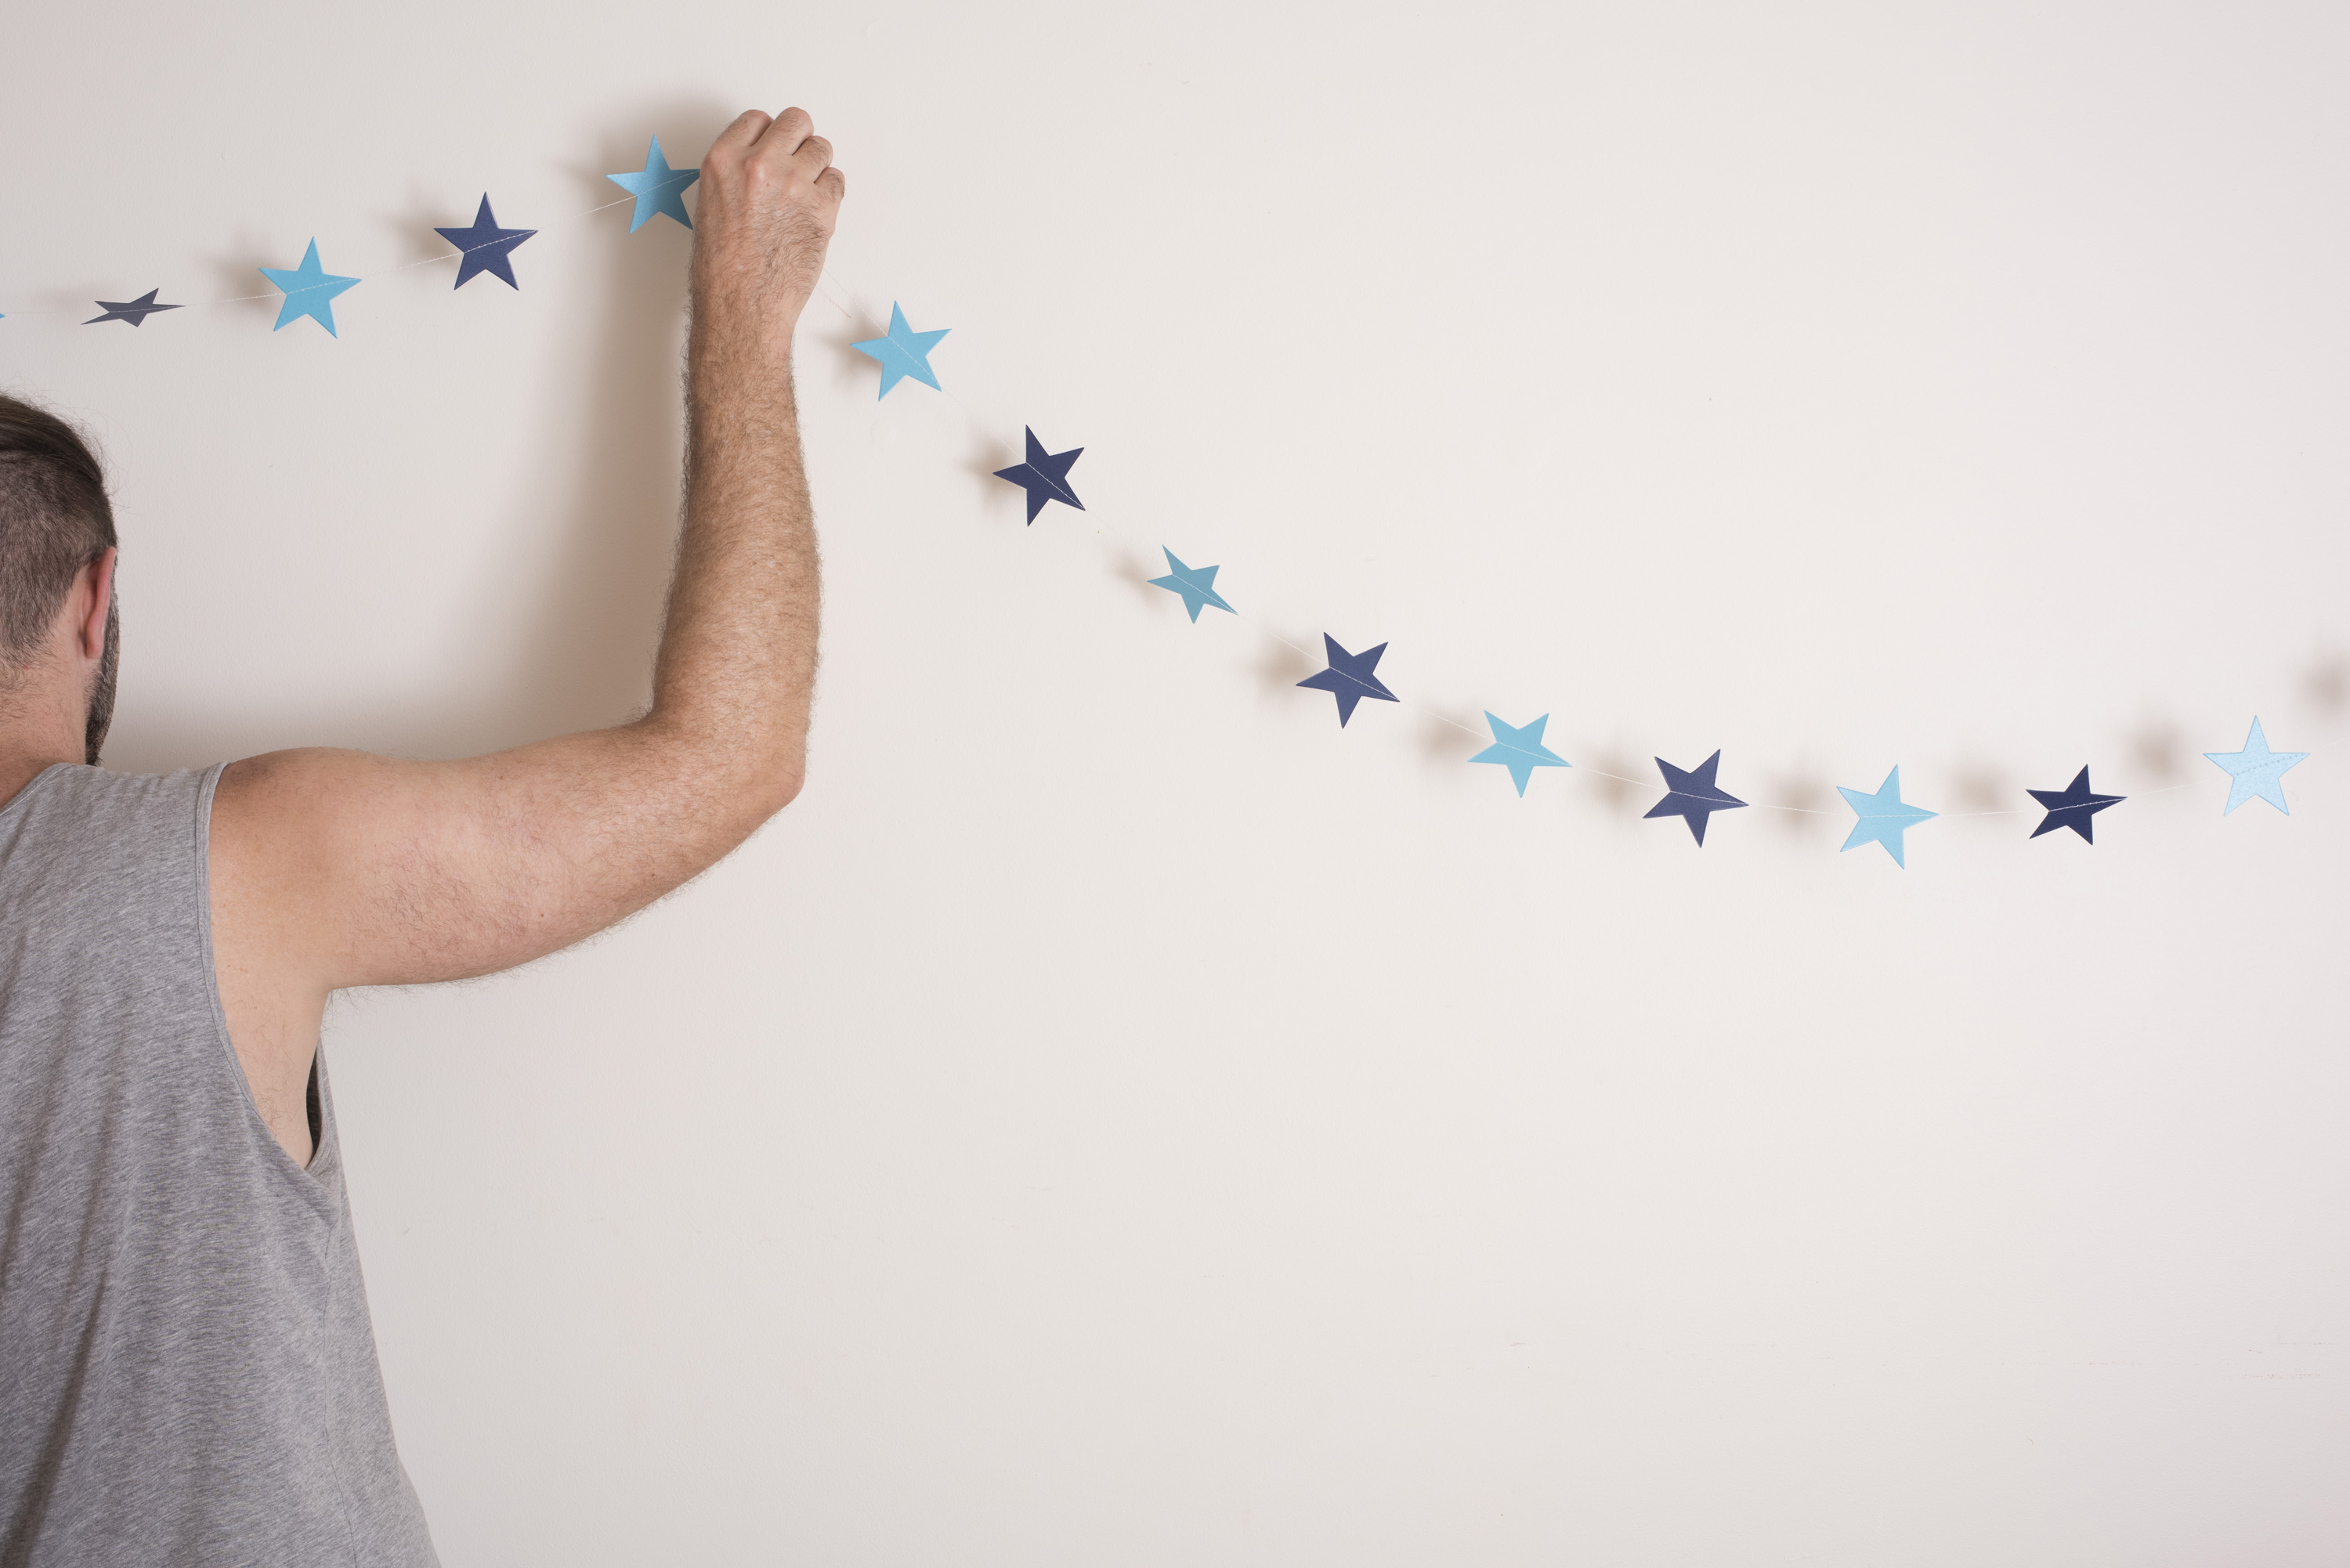 Man hanging simple Christmas bunting with a single string of blue paper stars on the wall of his house for a minimalist celebration